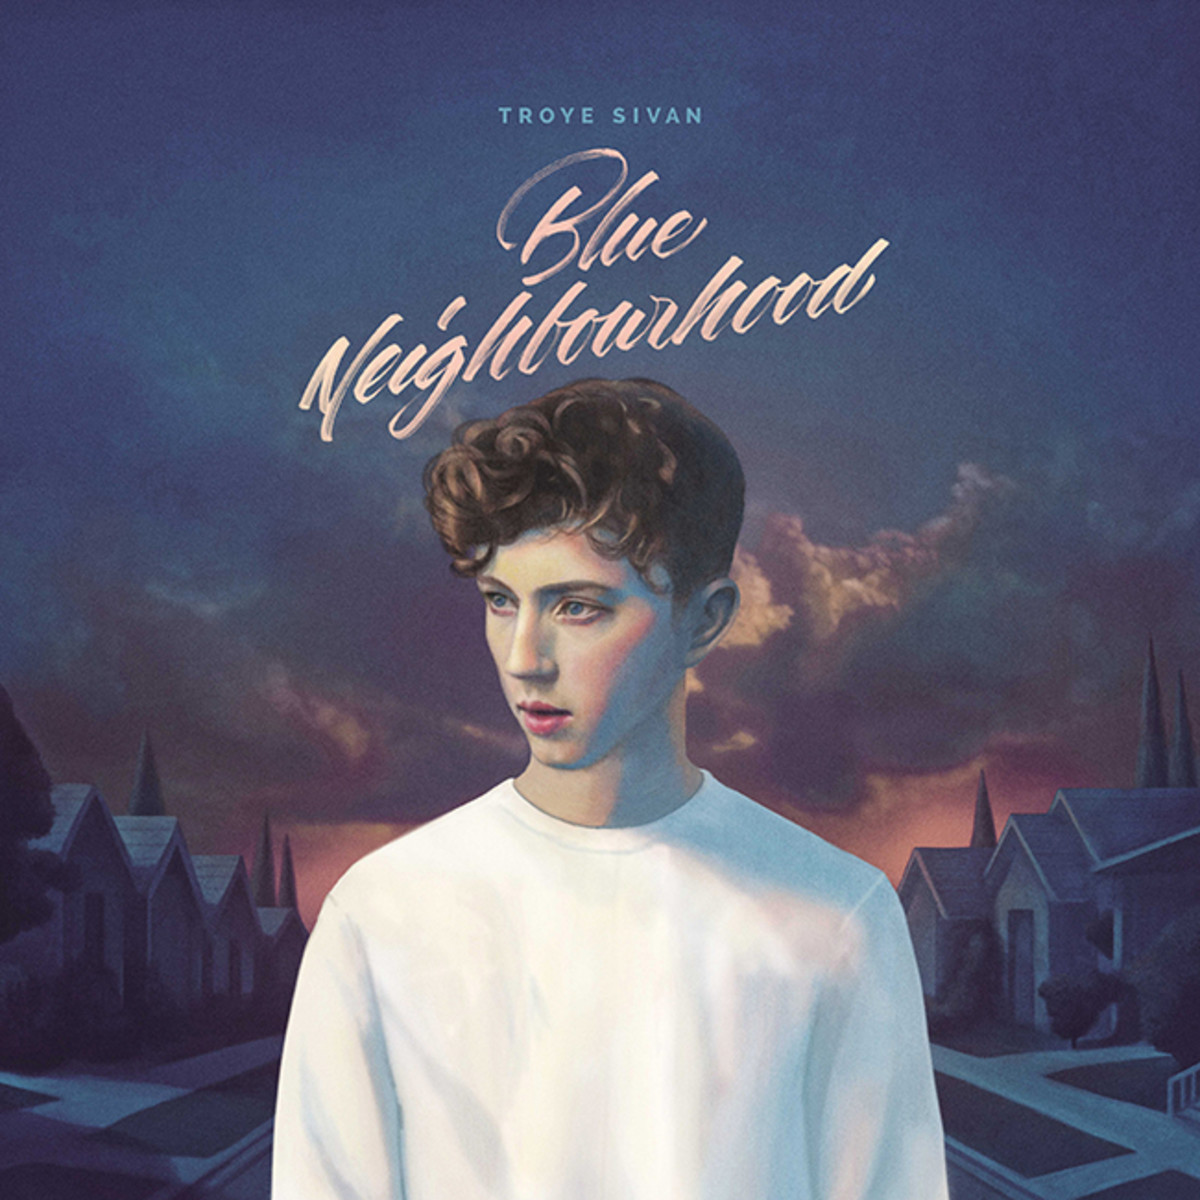 Troye Sivan's Blue Neighbourhood (Album Review)